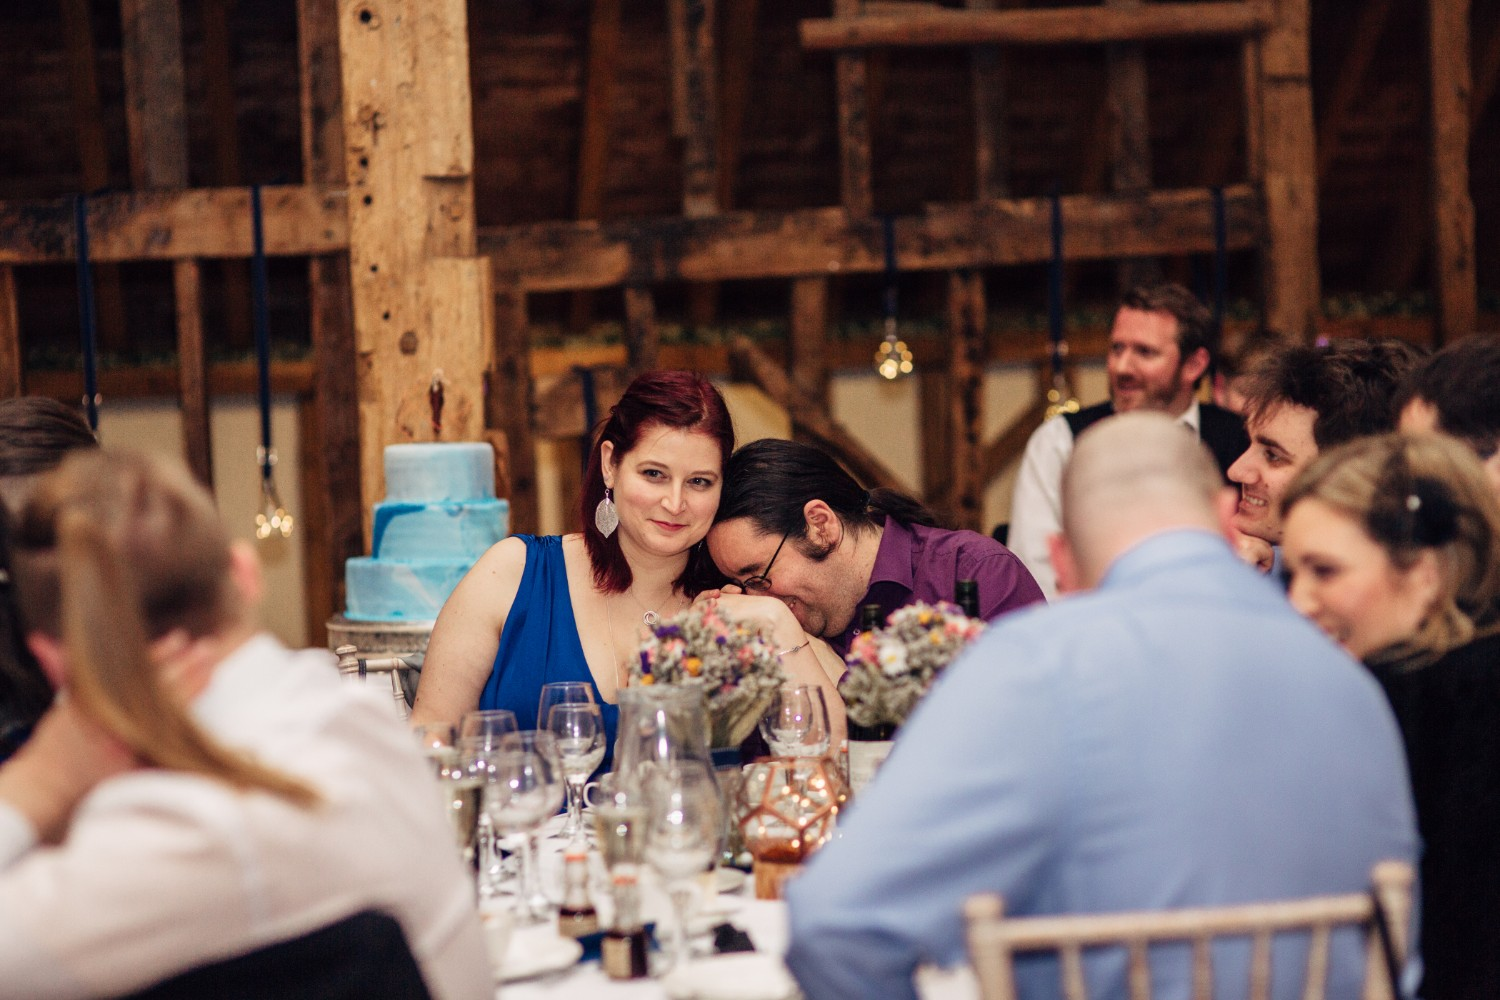 Liz + Dave Tewin Bury Farm Winter Wedding Naomijanephotography482.jpg